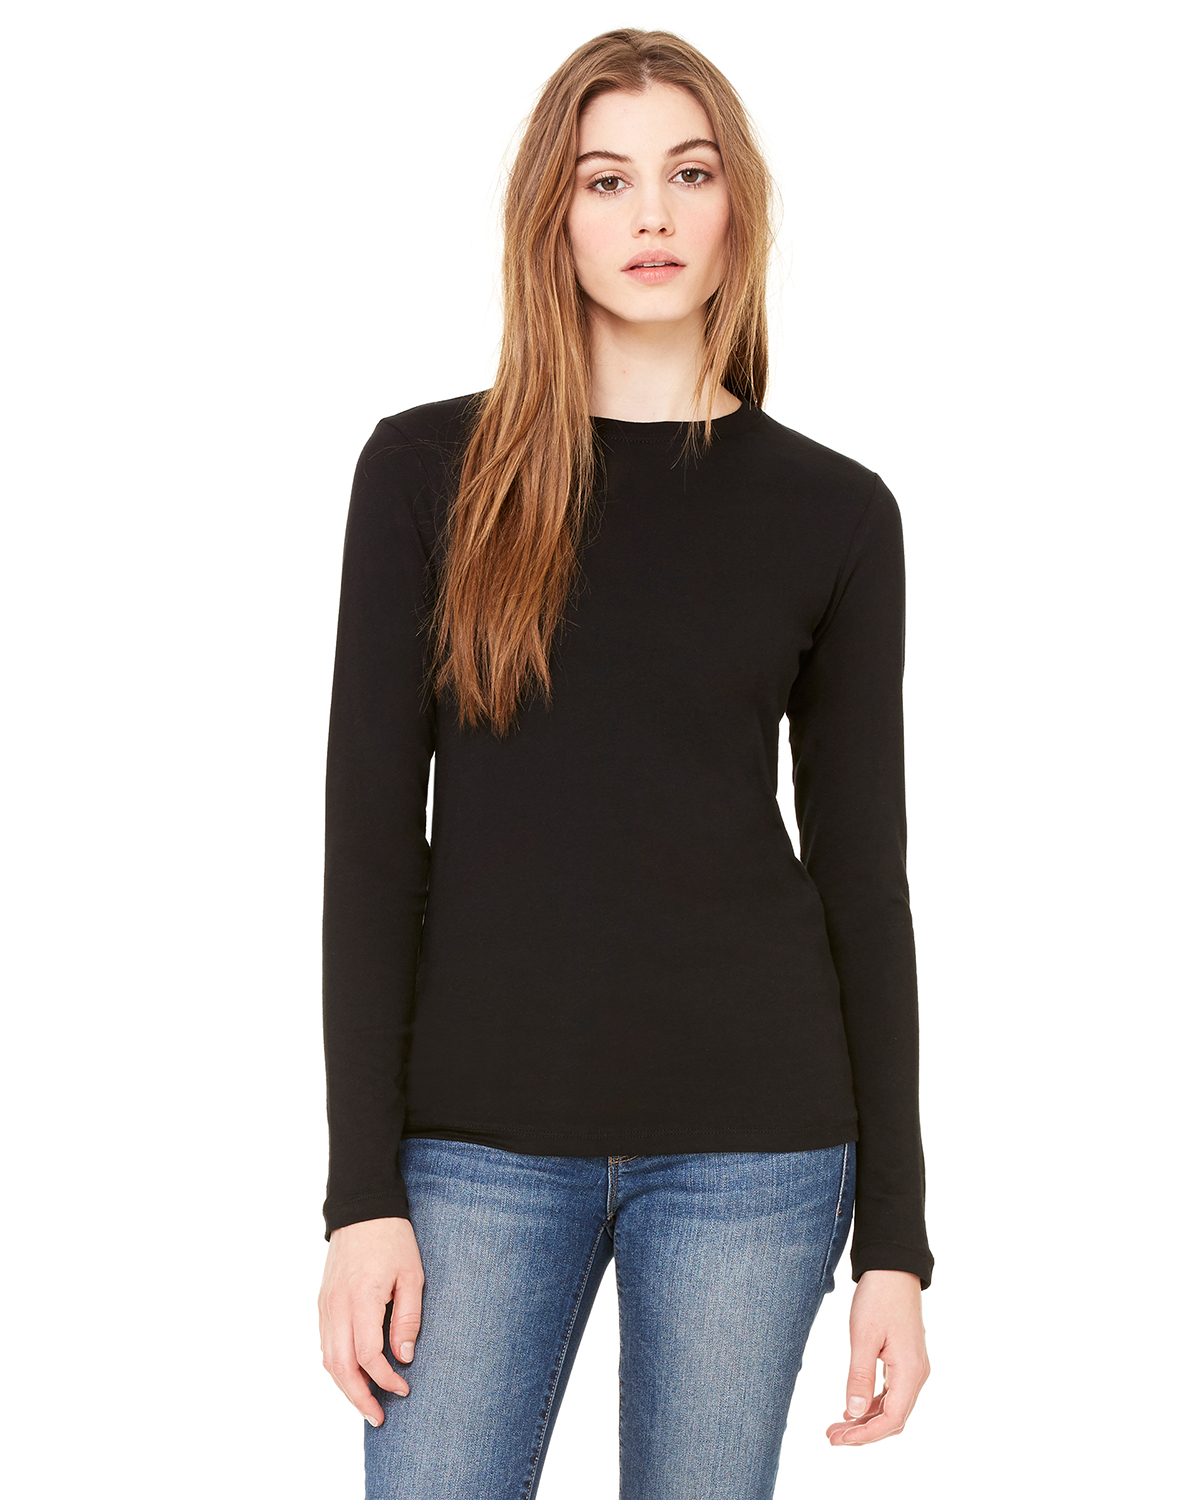 Bella B6500  Women's Long Sleeve Crew-neck Jersey T-...